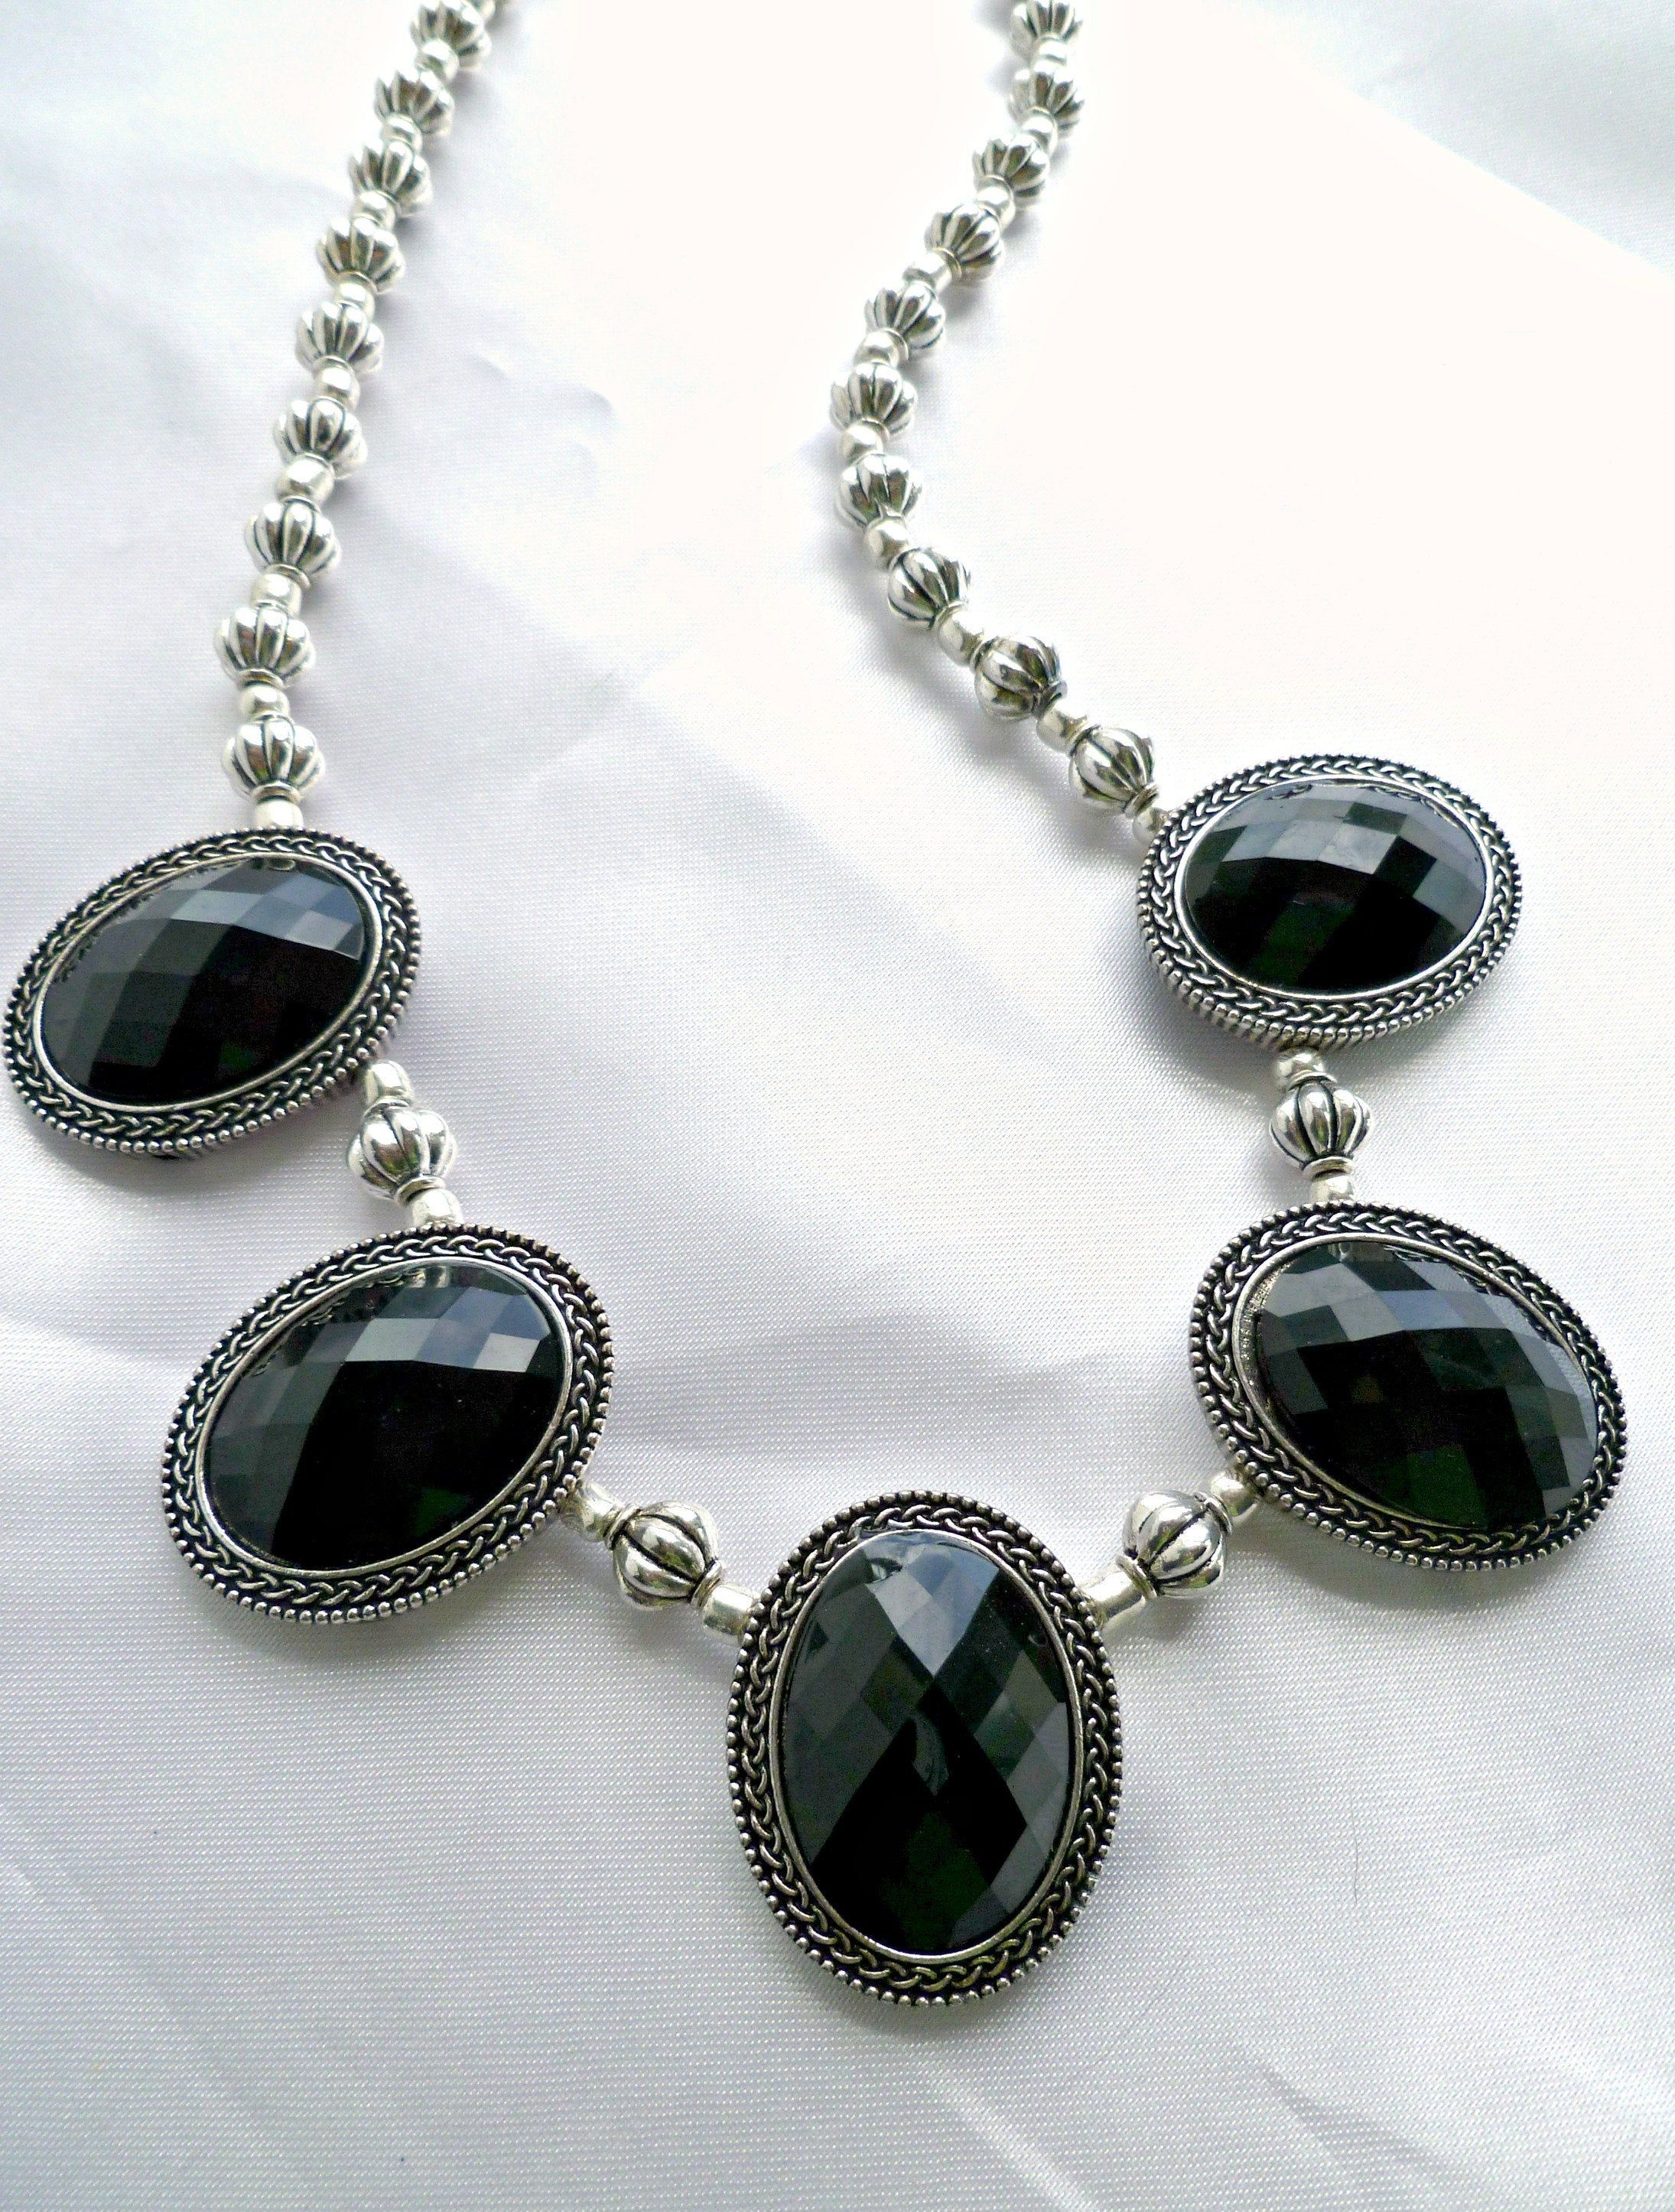 Black and silver medallion choker necklace statement